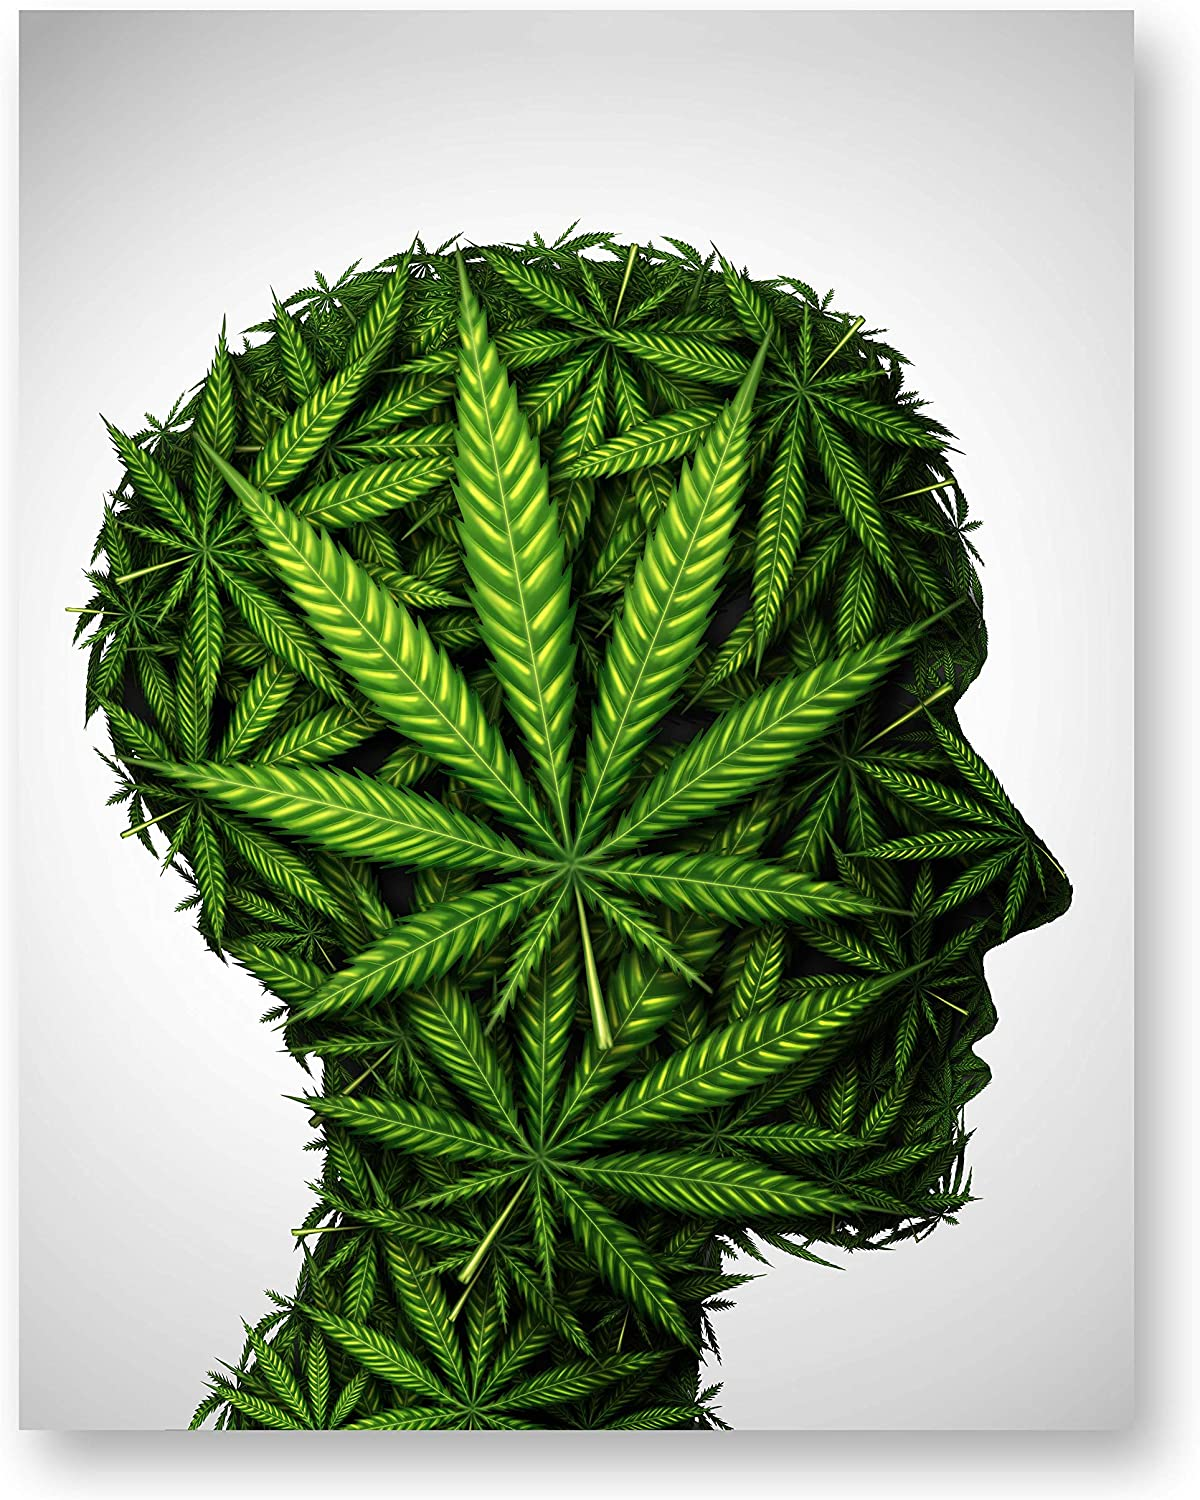 Pot Head Poster Print - (11 inches x 14 inches) Glossy Marijuana Cannabis Wall Art Decor